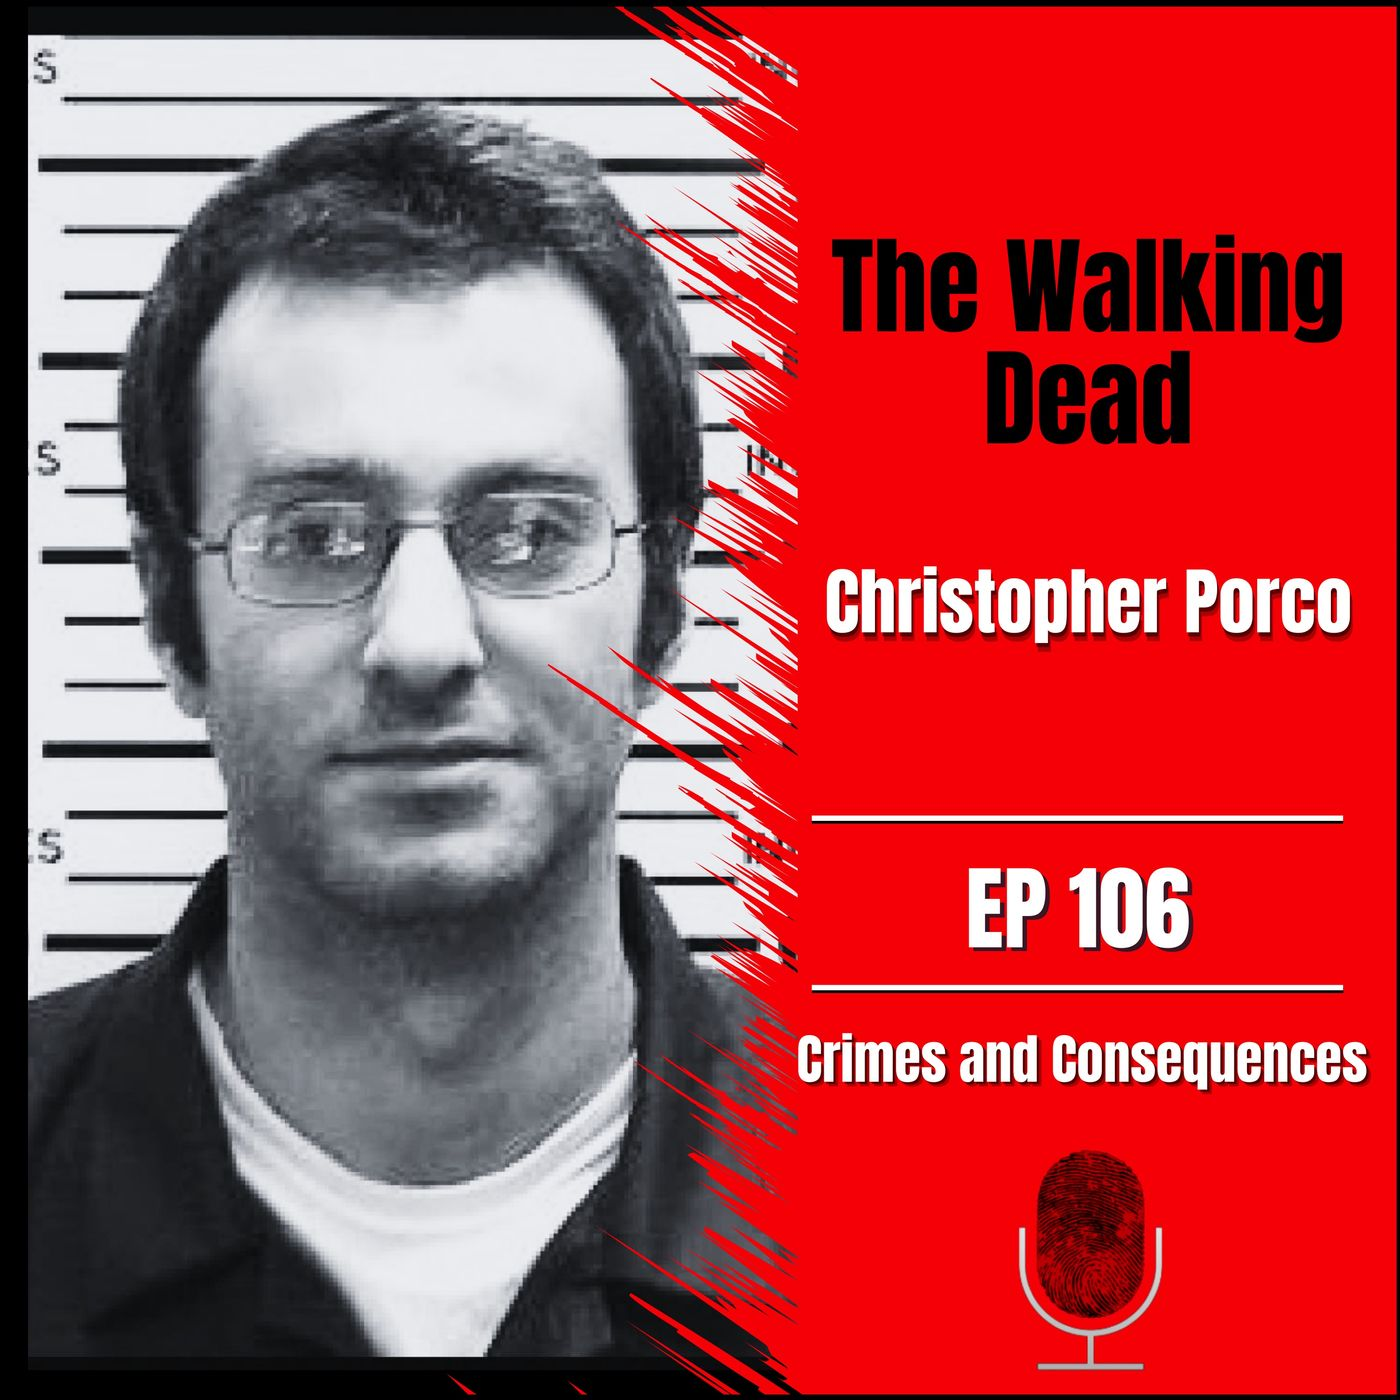 EP106: The Walking Dead (Peter Porco's Story)